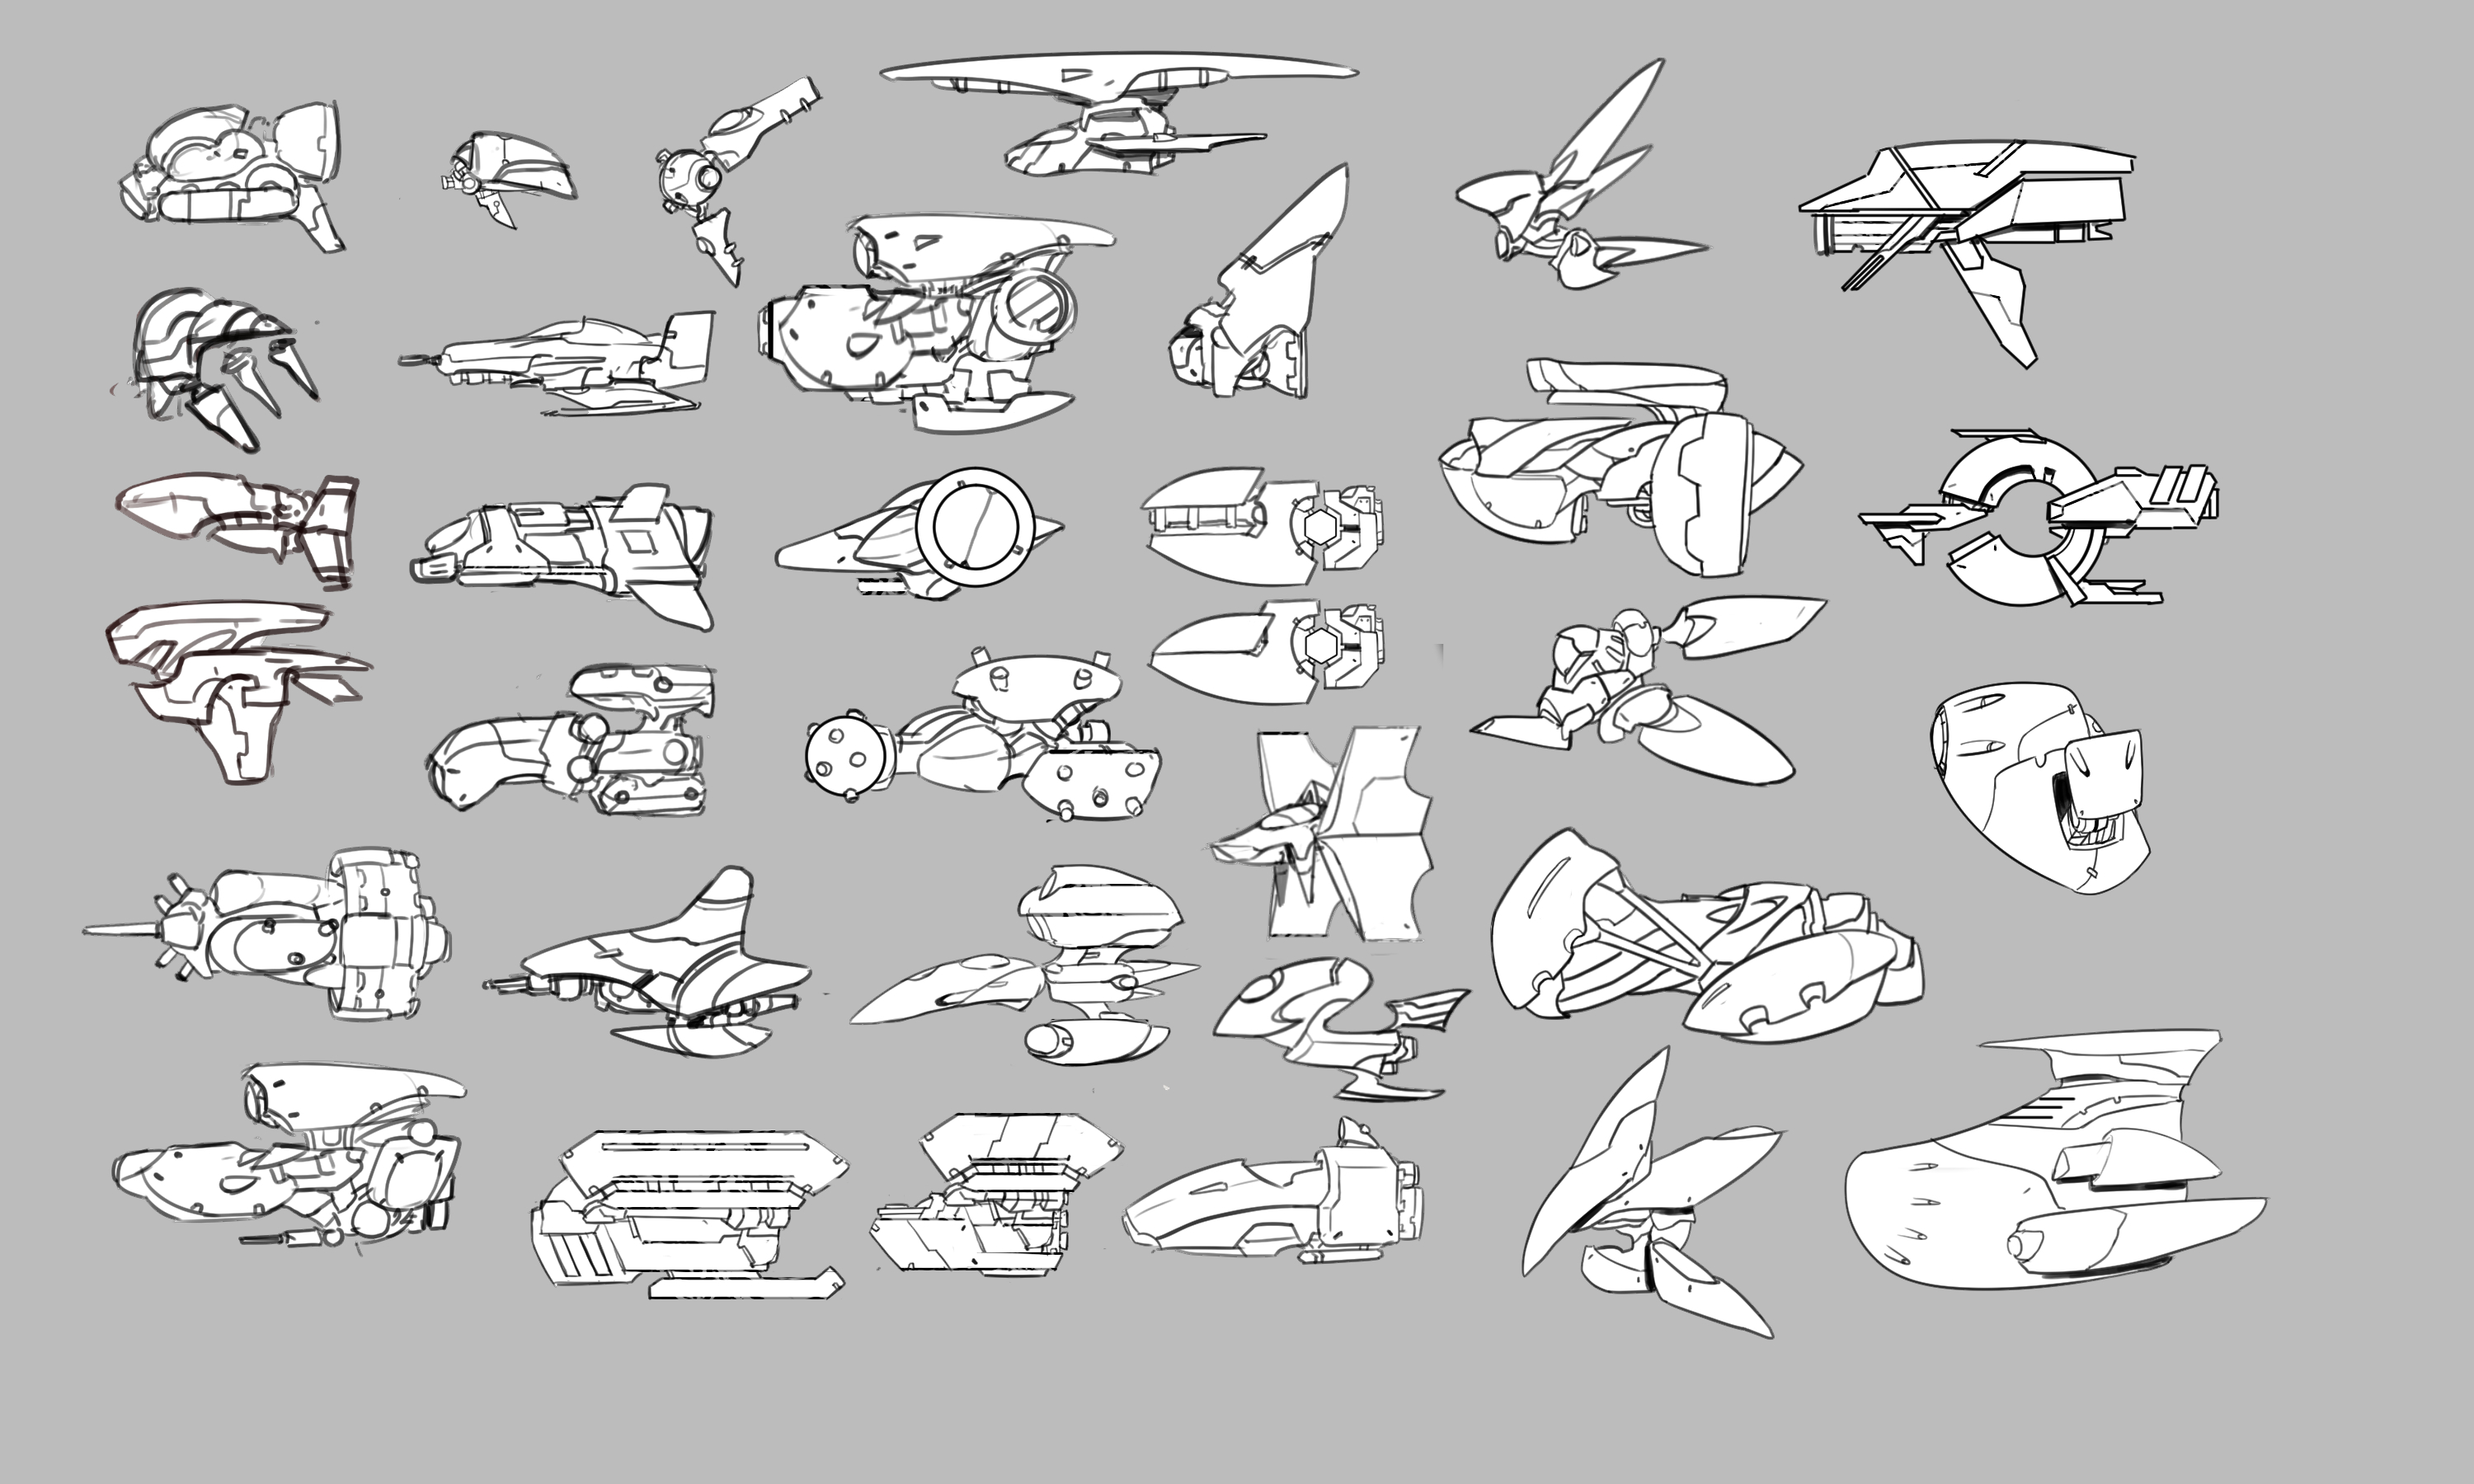 Potential Ship Models.